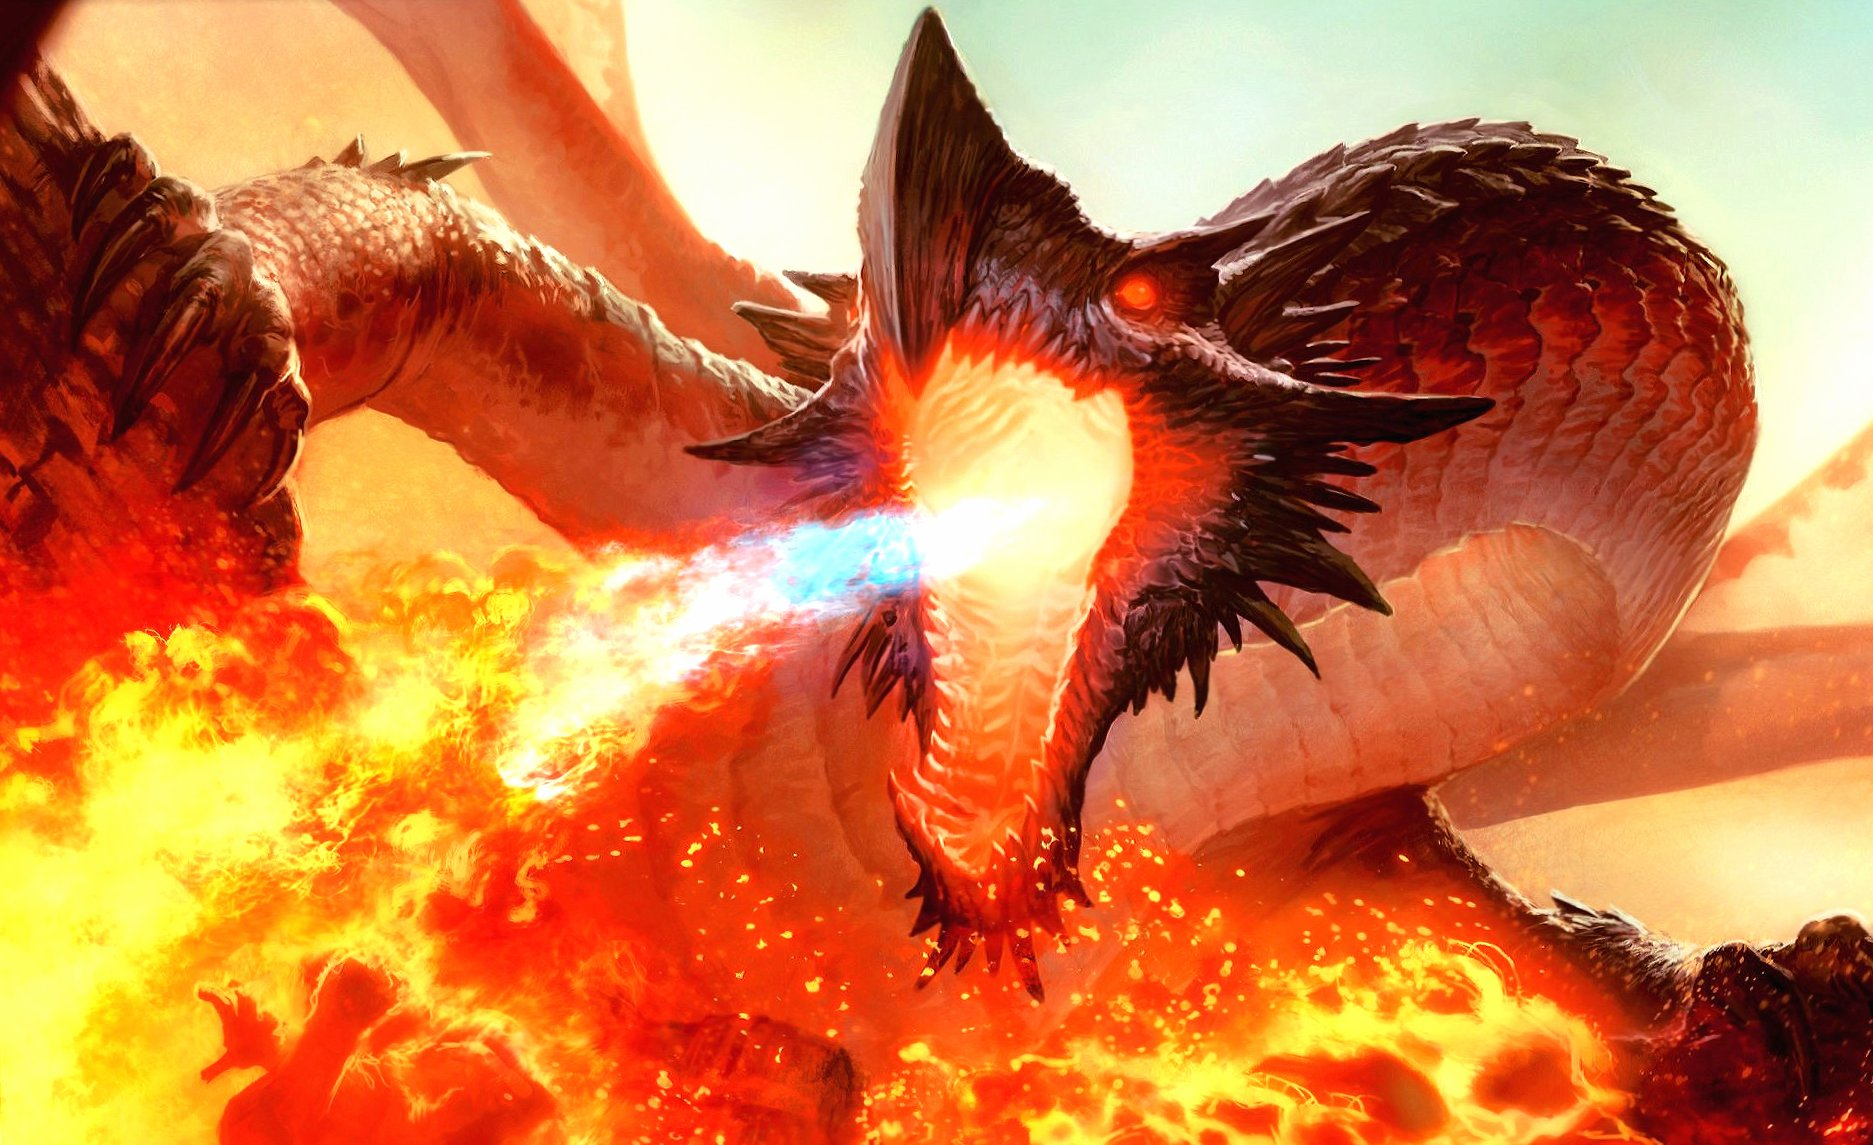 Fire dragon huge fantasy wallpapers HD quality